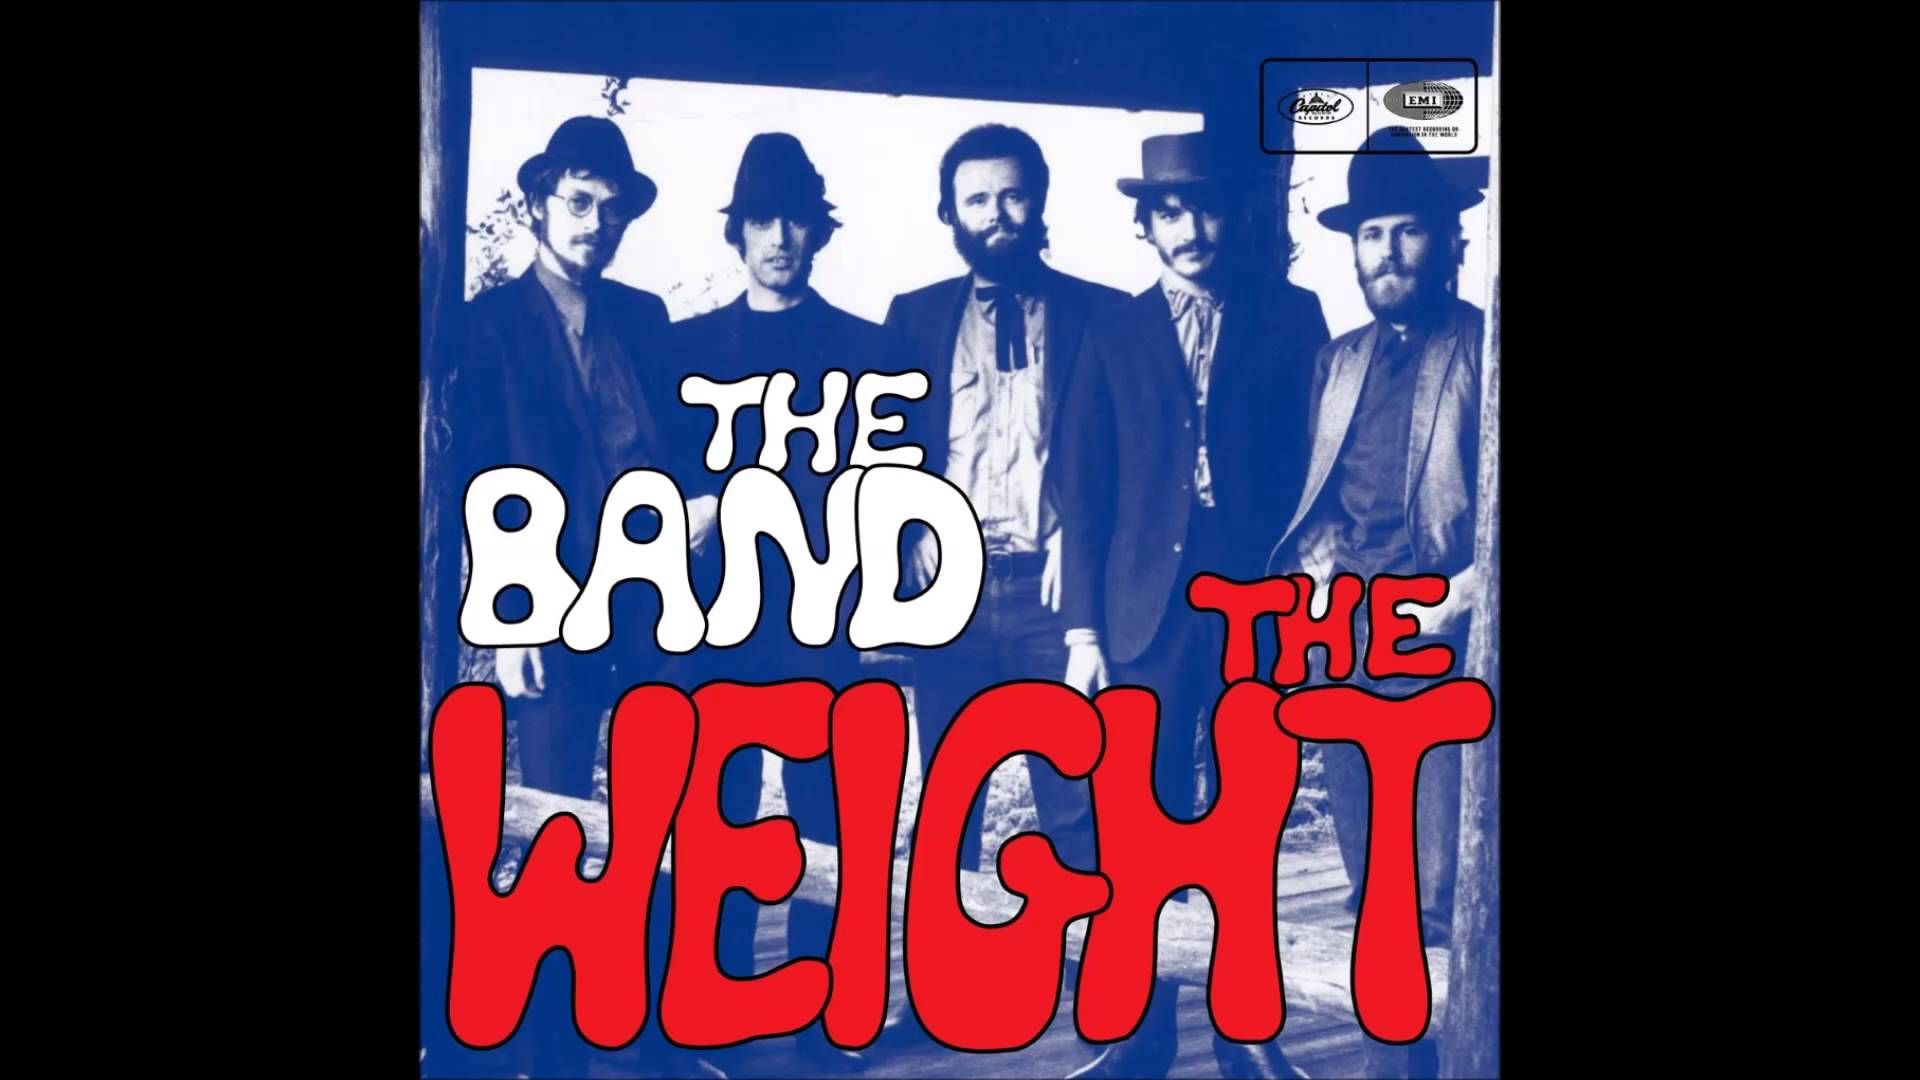 Versión de  R.E.U.P. para el tema original de Robbie Robertson and The Band  - The weight